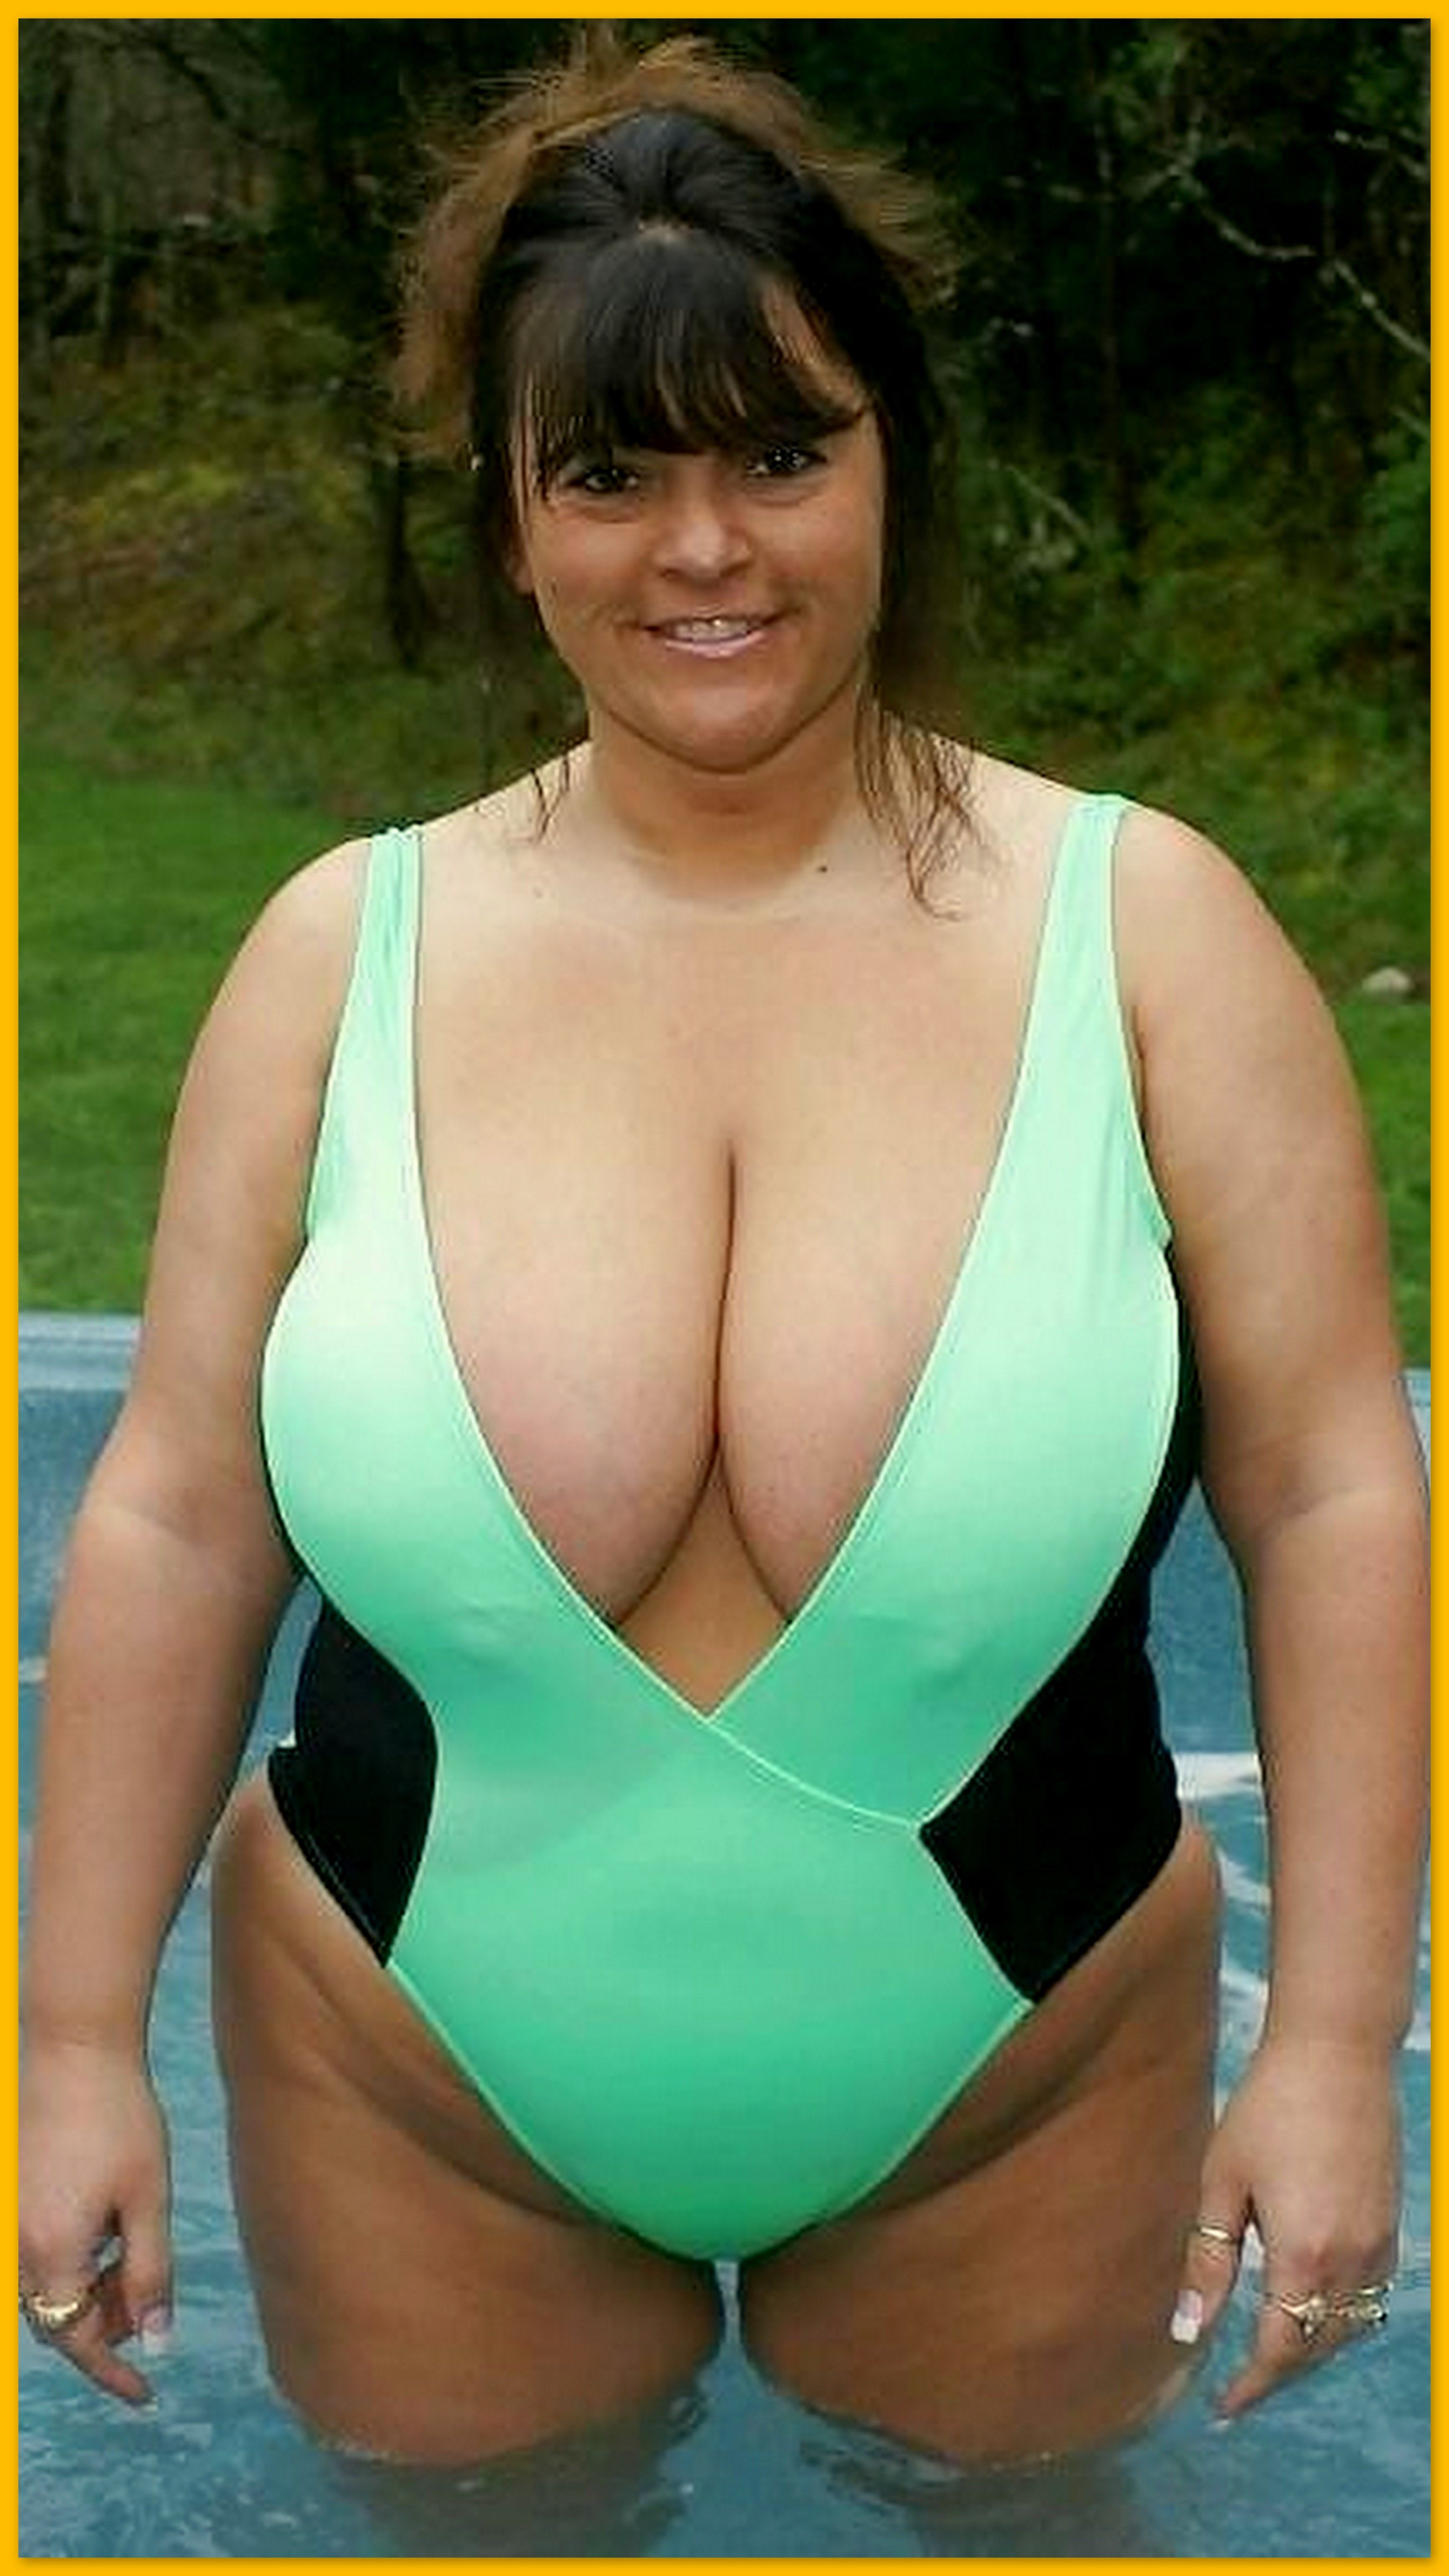 that's nice | ss bbw | pinterest | nice, swimsuits and curvy